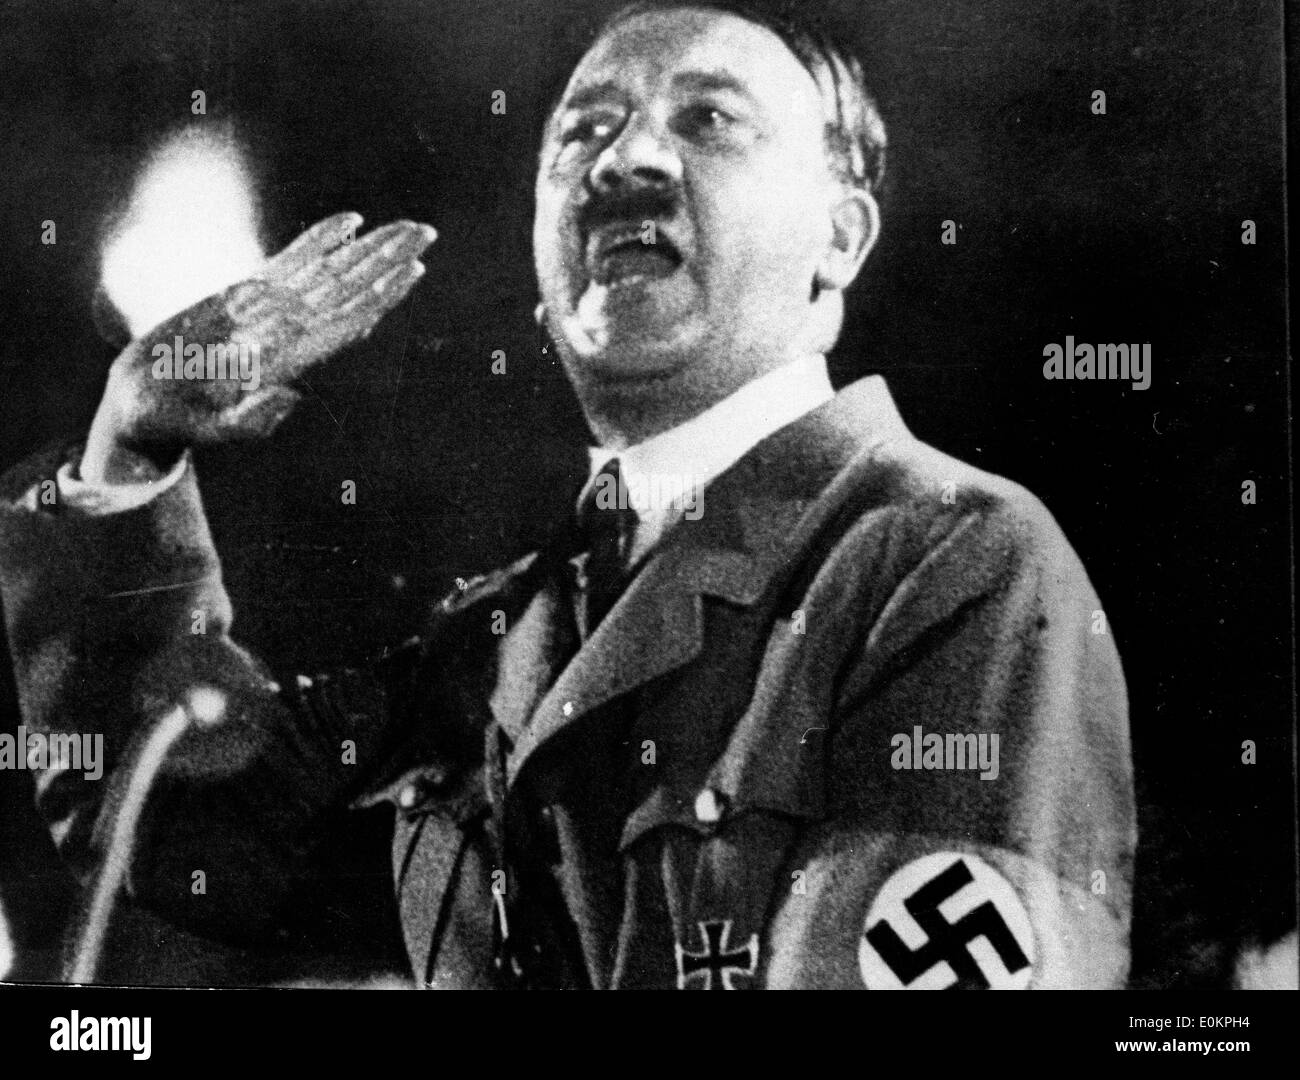 Adolf hitler dictating before commiting suicide - Stock Image